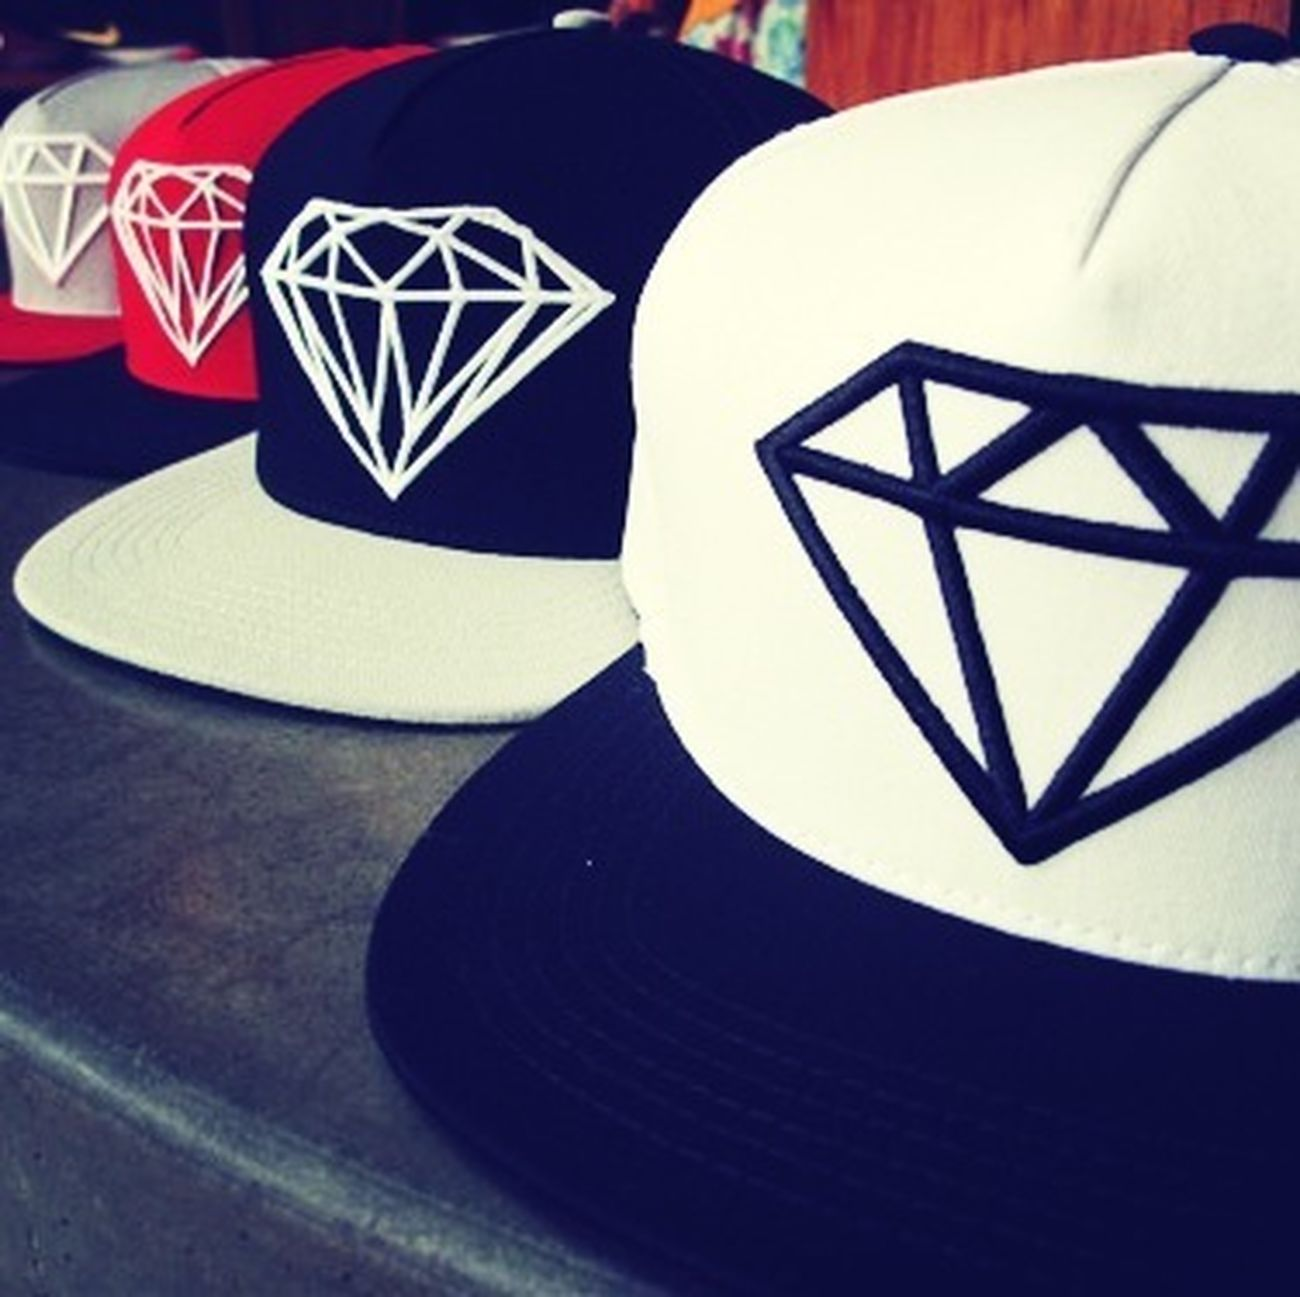 New hats I bought